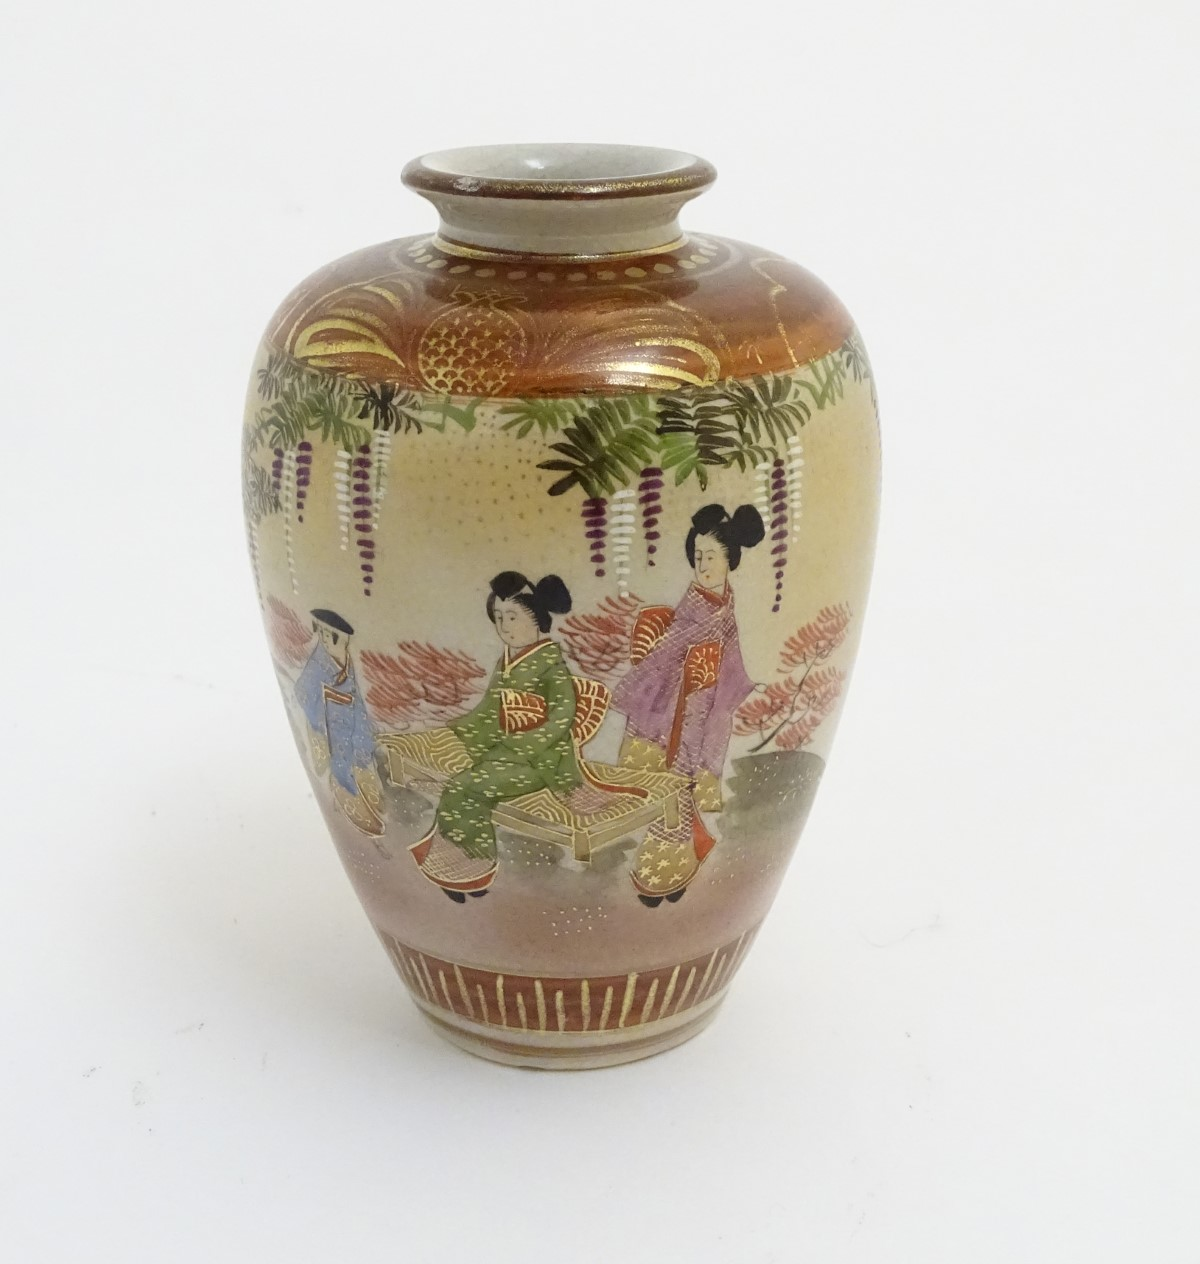 Lot 27 - A small Japanese satsuma vase depicting figures in a garden, with gilt highlights.